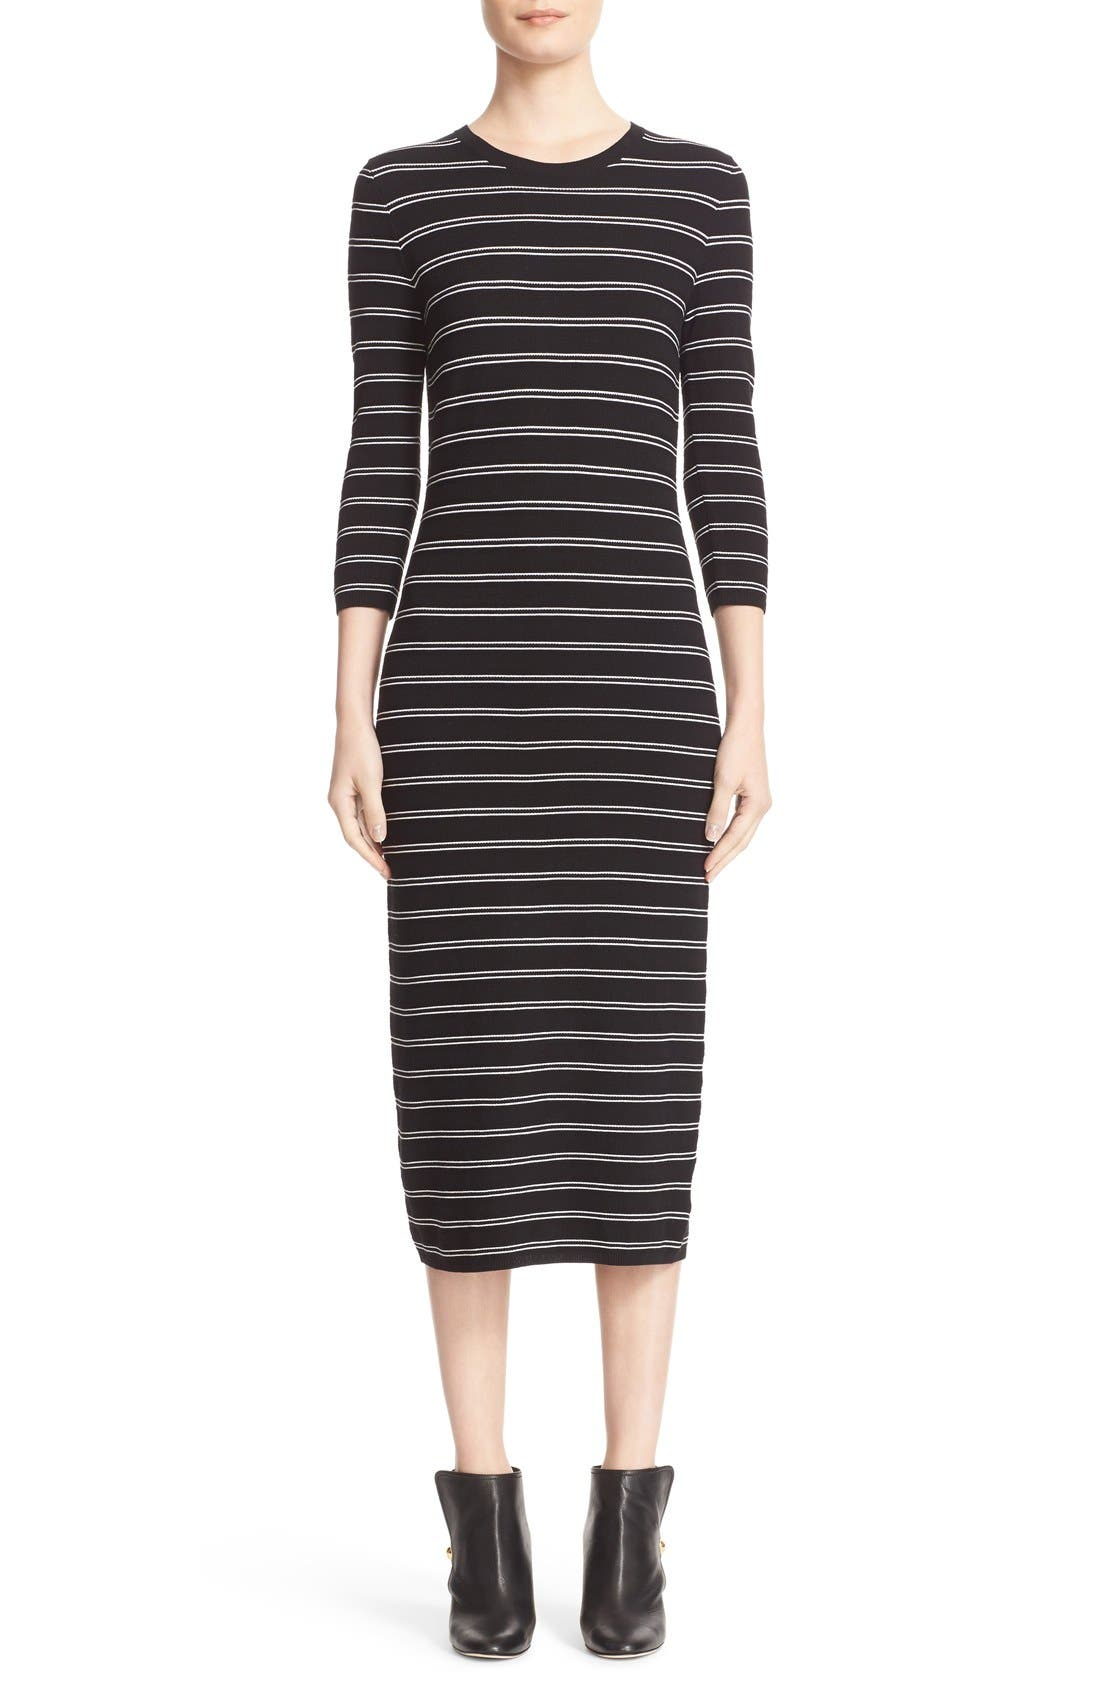 Alternate Image 1 Selected - Theory 'Delissa B' Stripe Textured Knit Maxi Dress